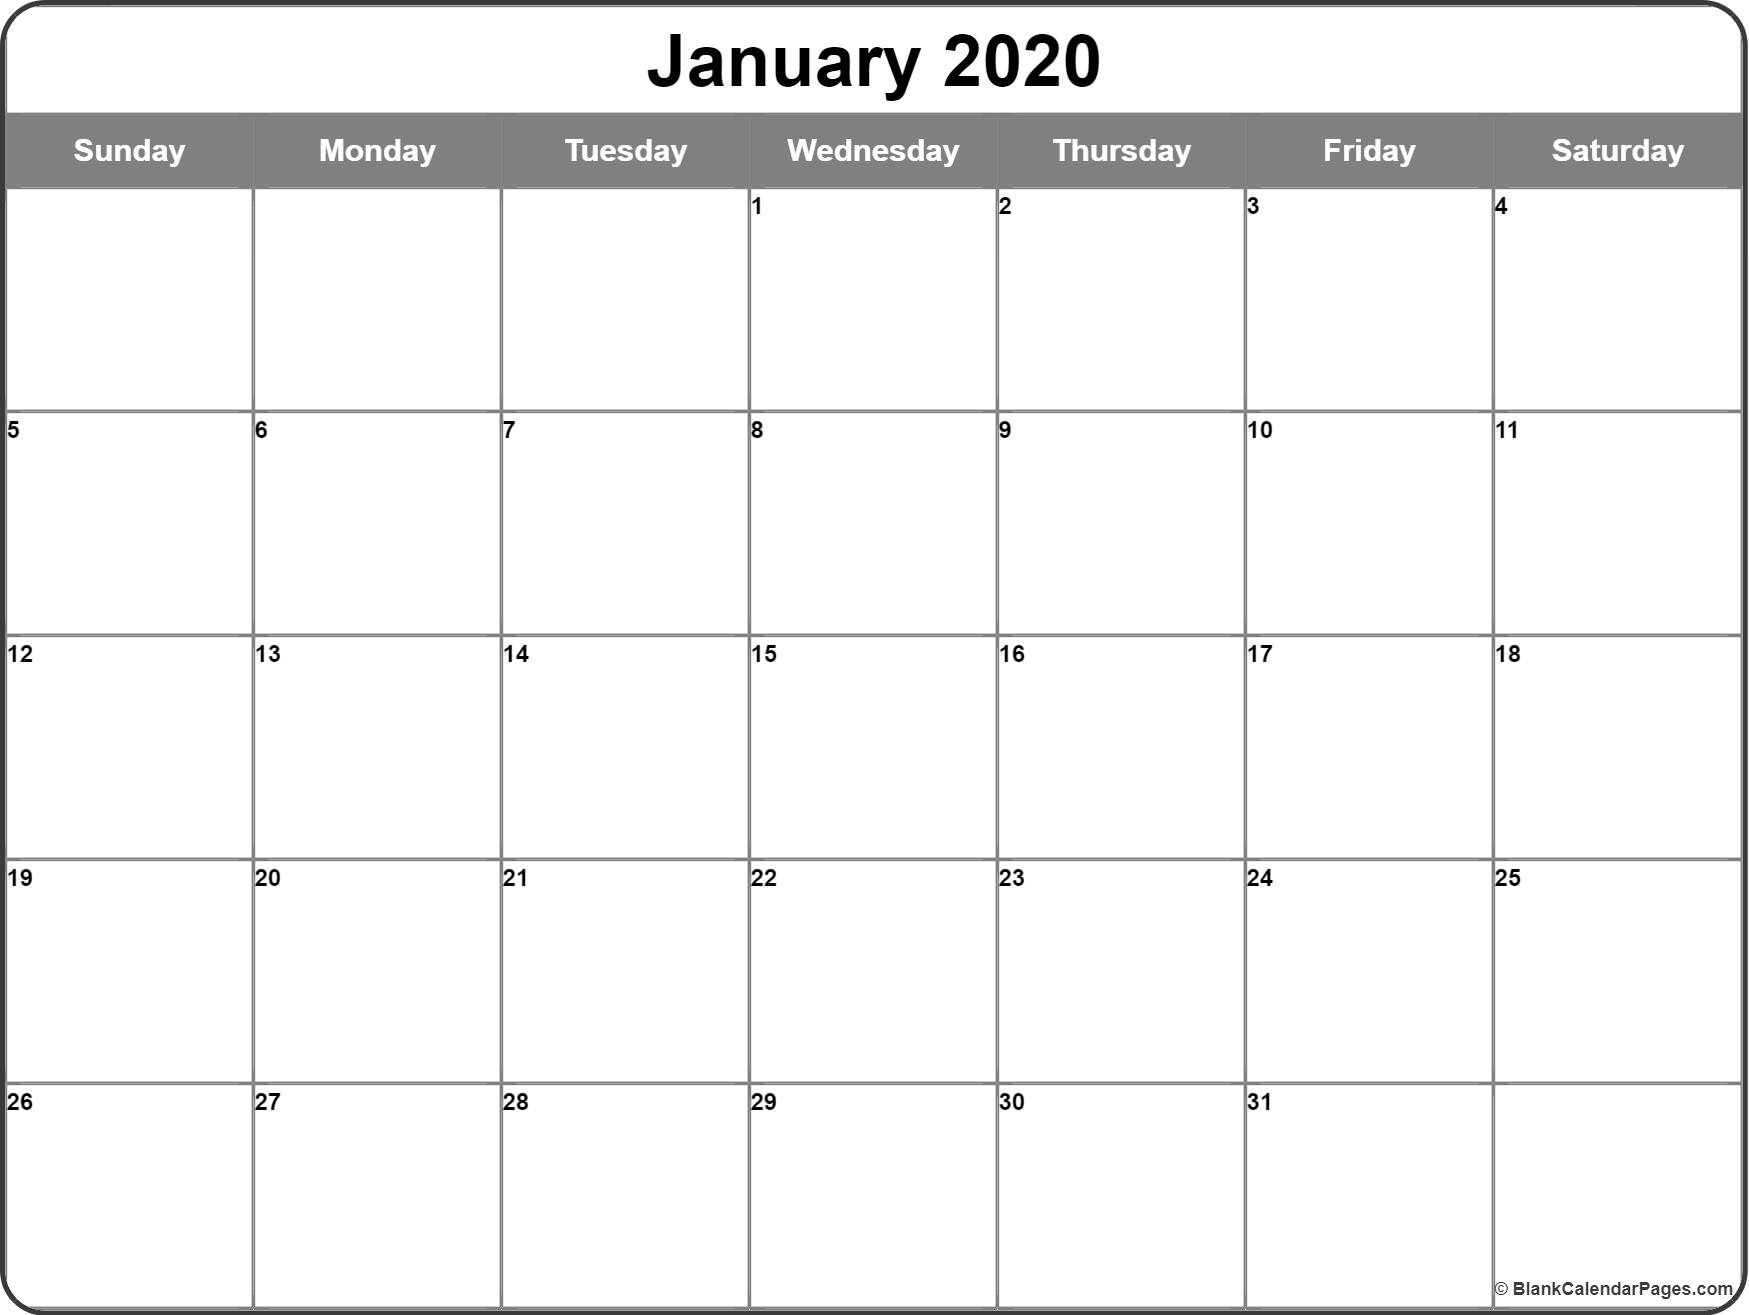 January 2020 Calendar | Free Printable Monthly Calendars  Free Monthly Calendar Print Out 2020 With Holidays